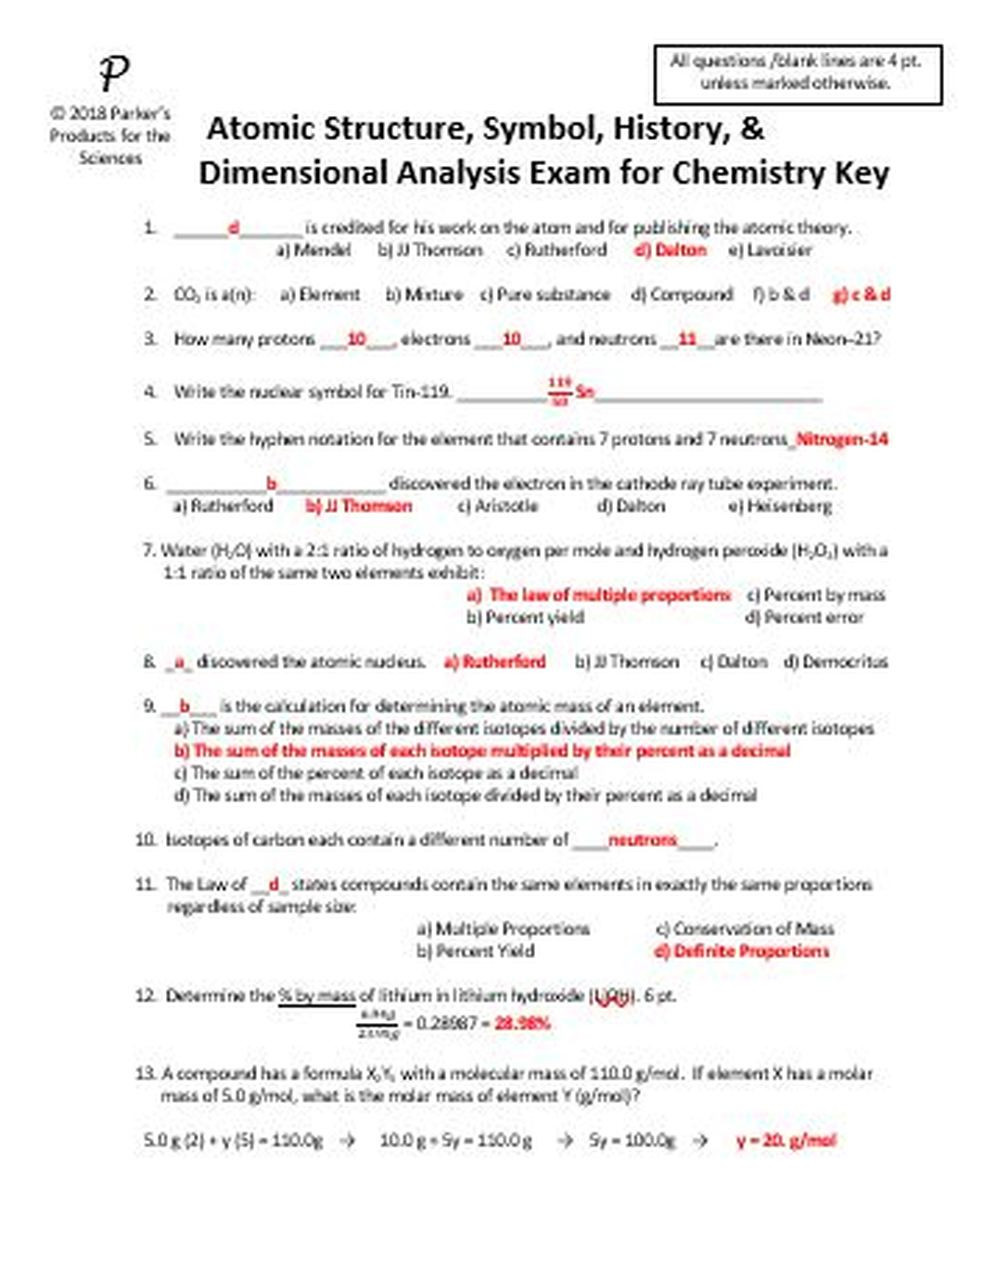 Dimensional Analysis Worksheet Chemistry atomic Structure Symbol History and Dimensional Analysis Exam for Chemistry